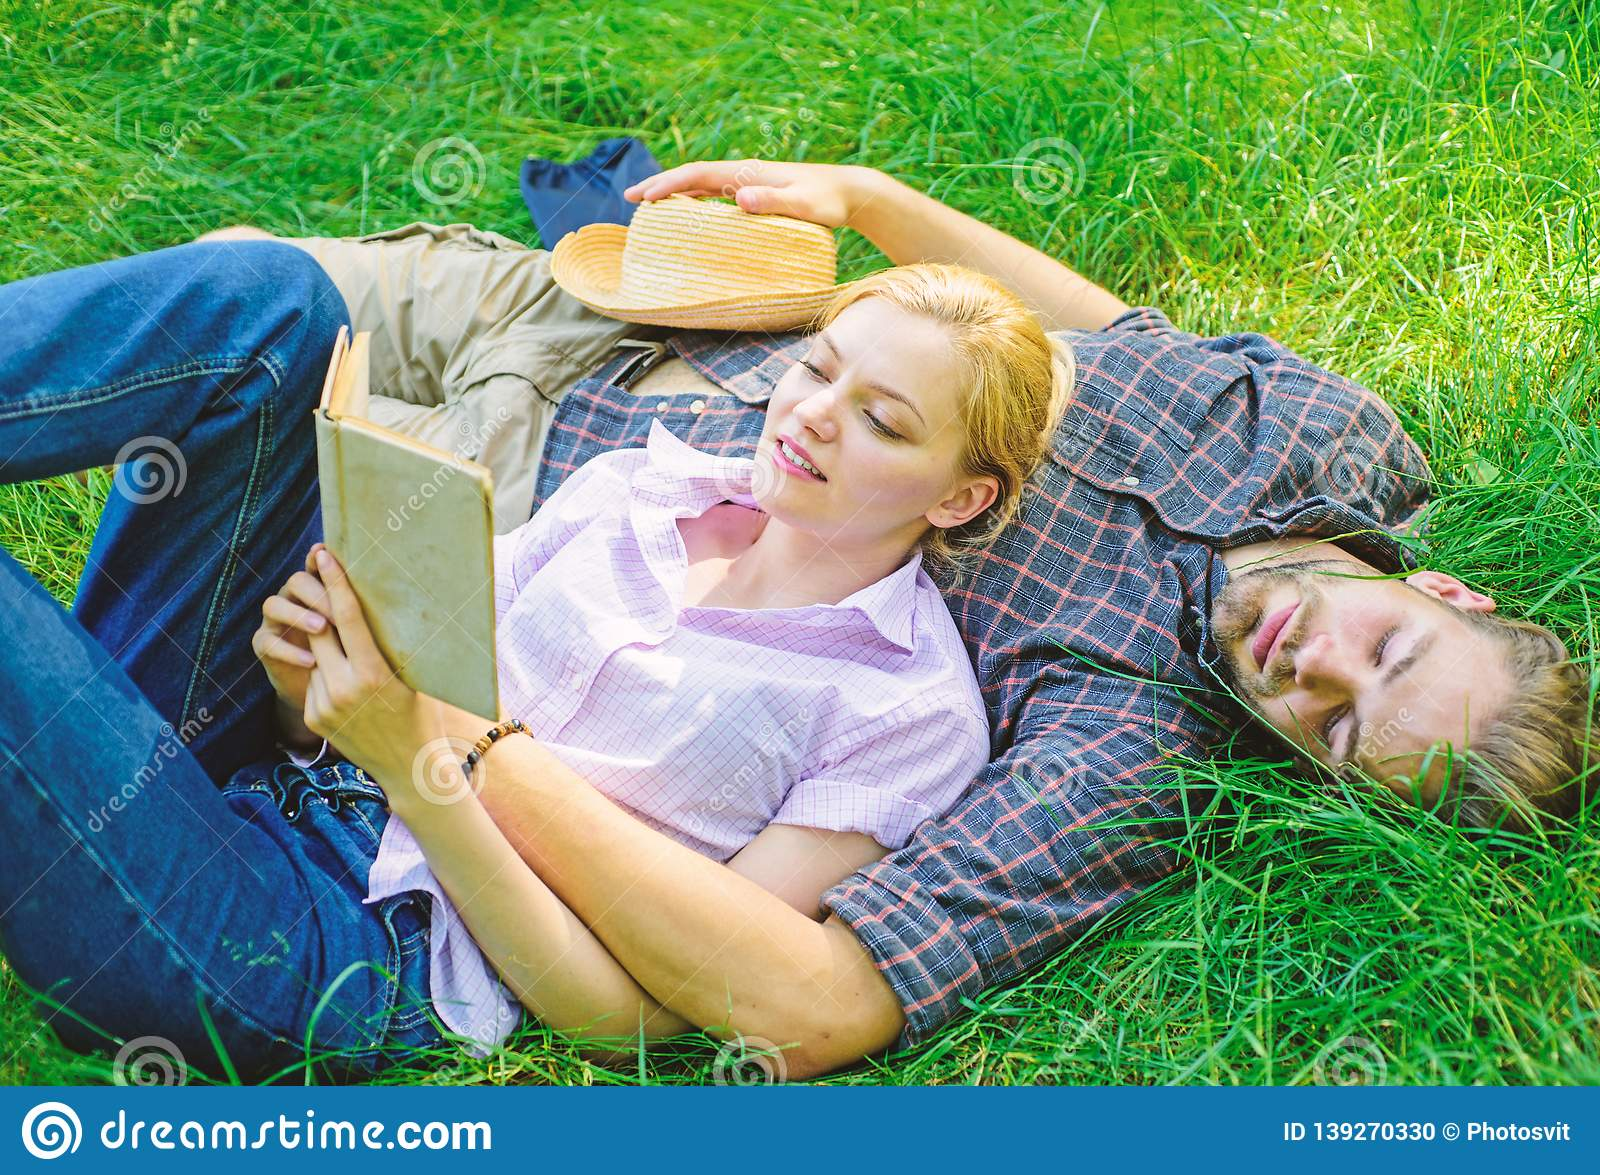 Romantic Couple Students Enjoy Leisure With Poetry Or